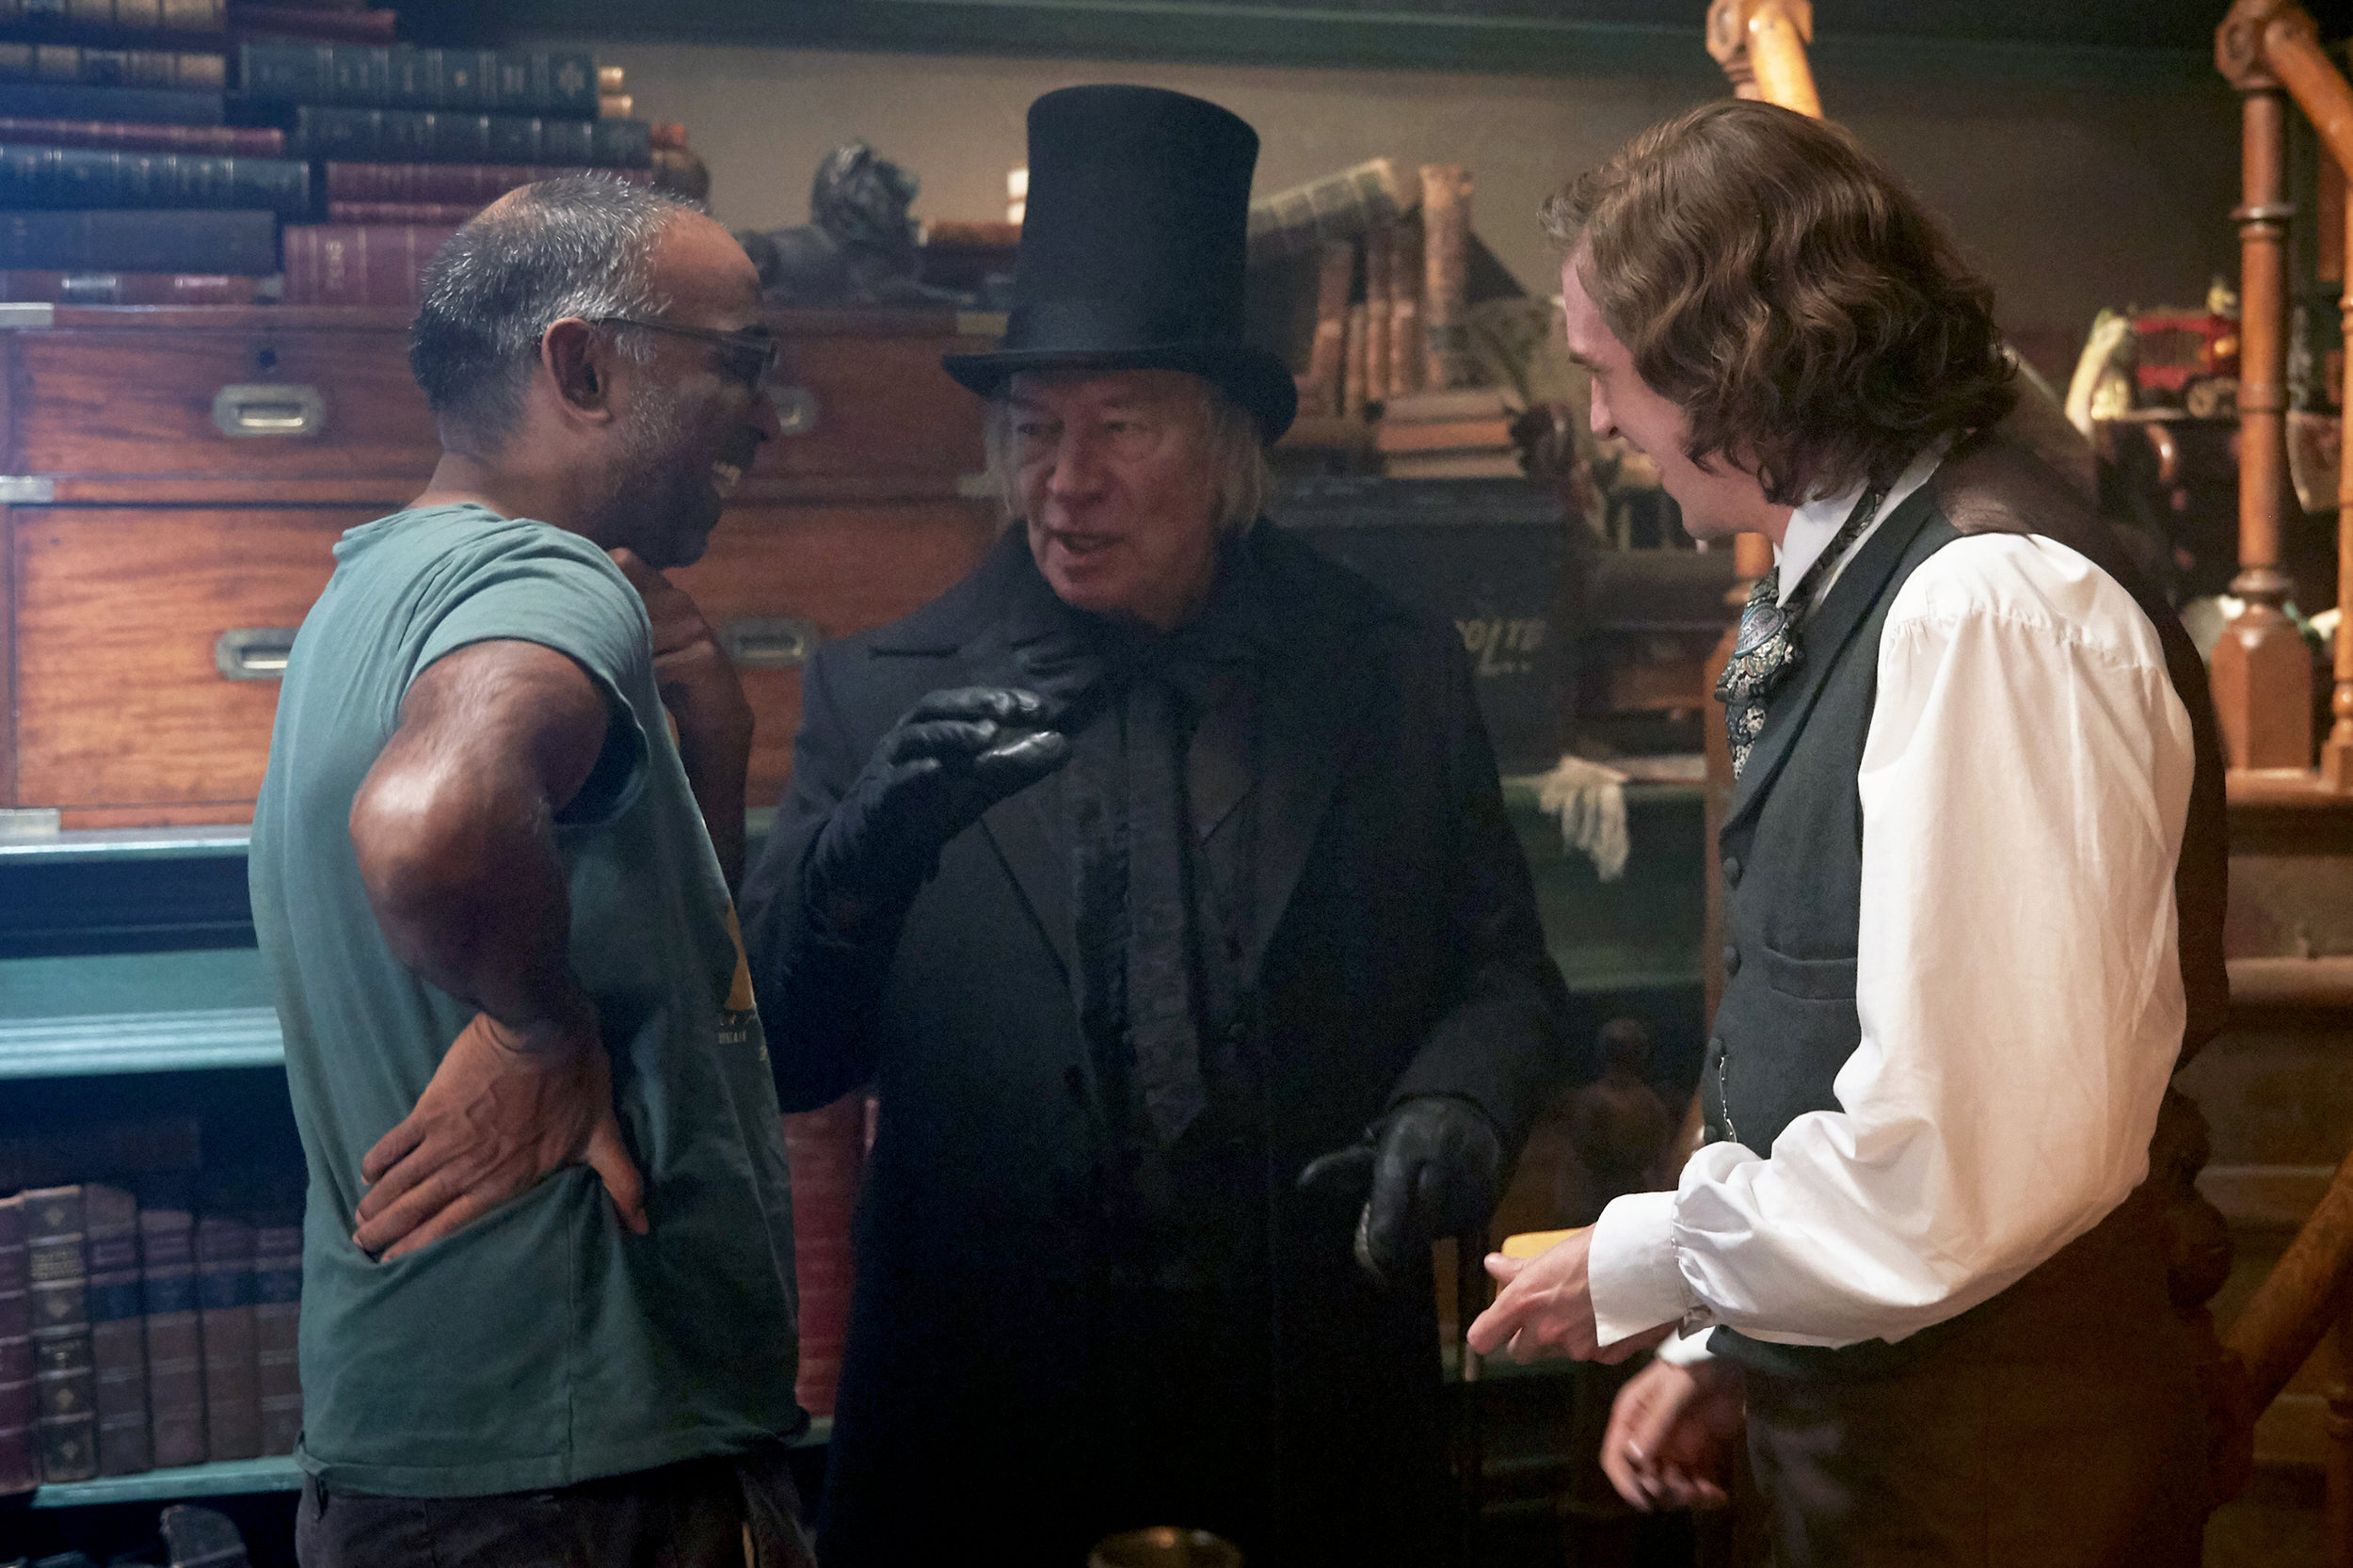 Director Nalluri talks over a scene with Scrooge (Plummer) and Dickens (Stevens)